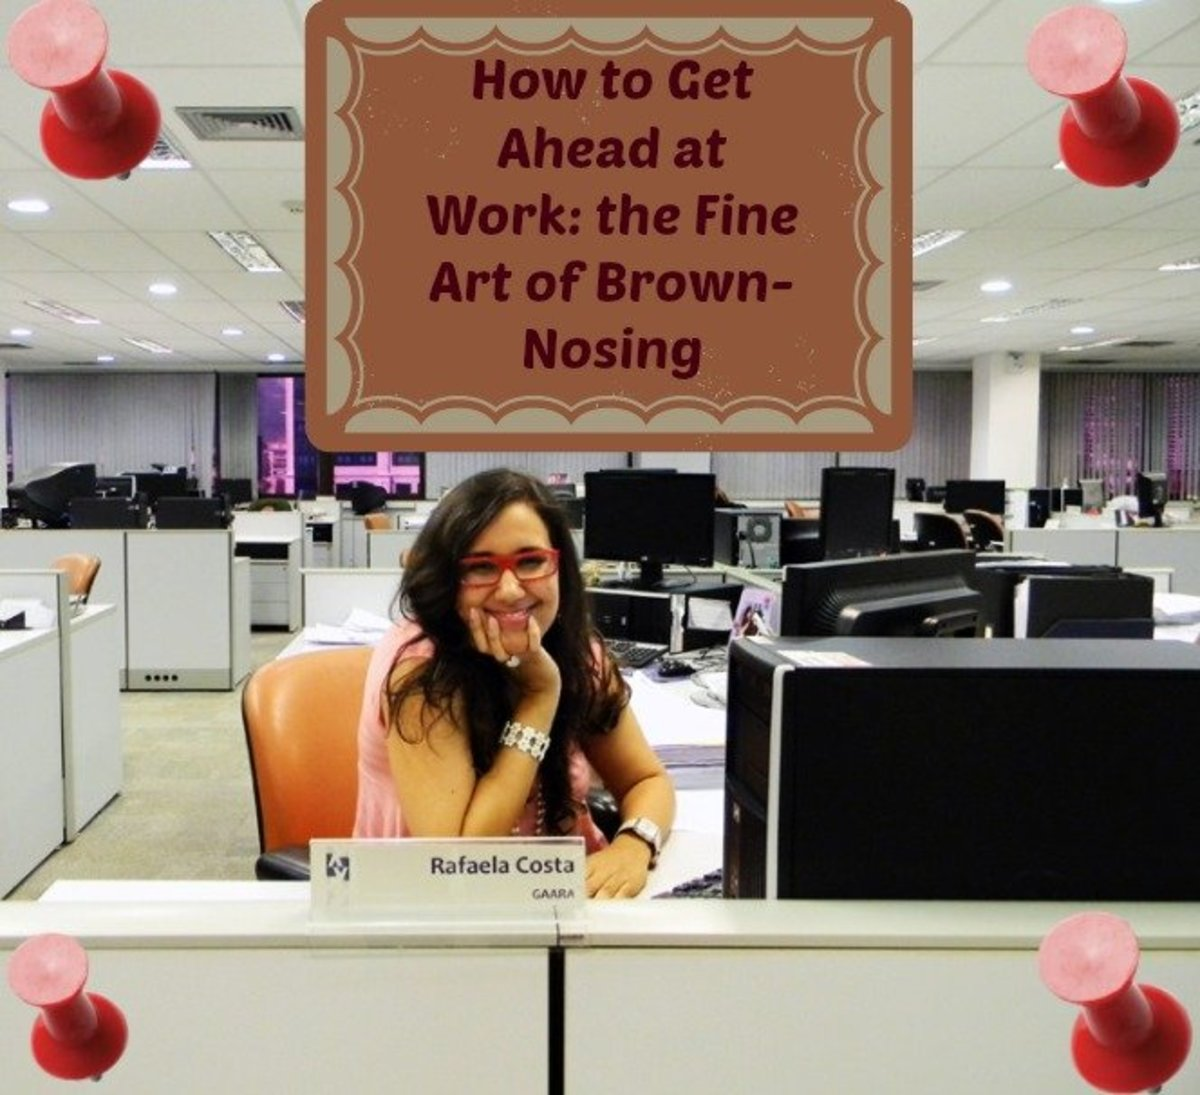 Learn How to Get Ahead at Work:  the Fine Art of Brown-Nosing, Strategic Advice Seeking, and Shameless Horn Tooting